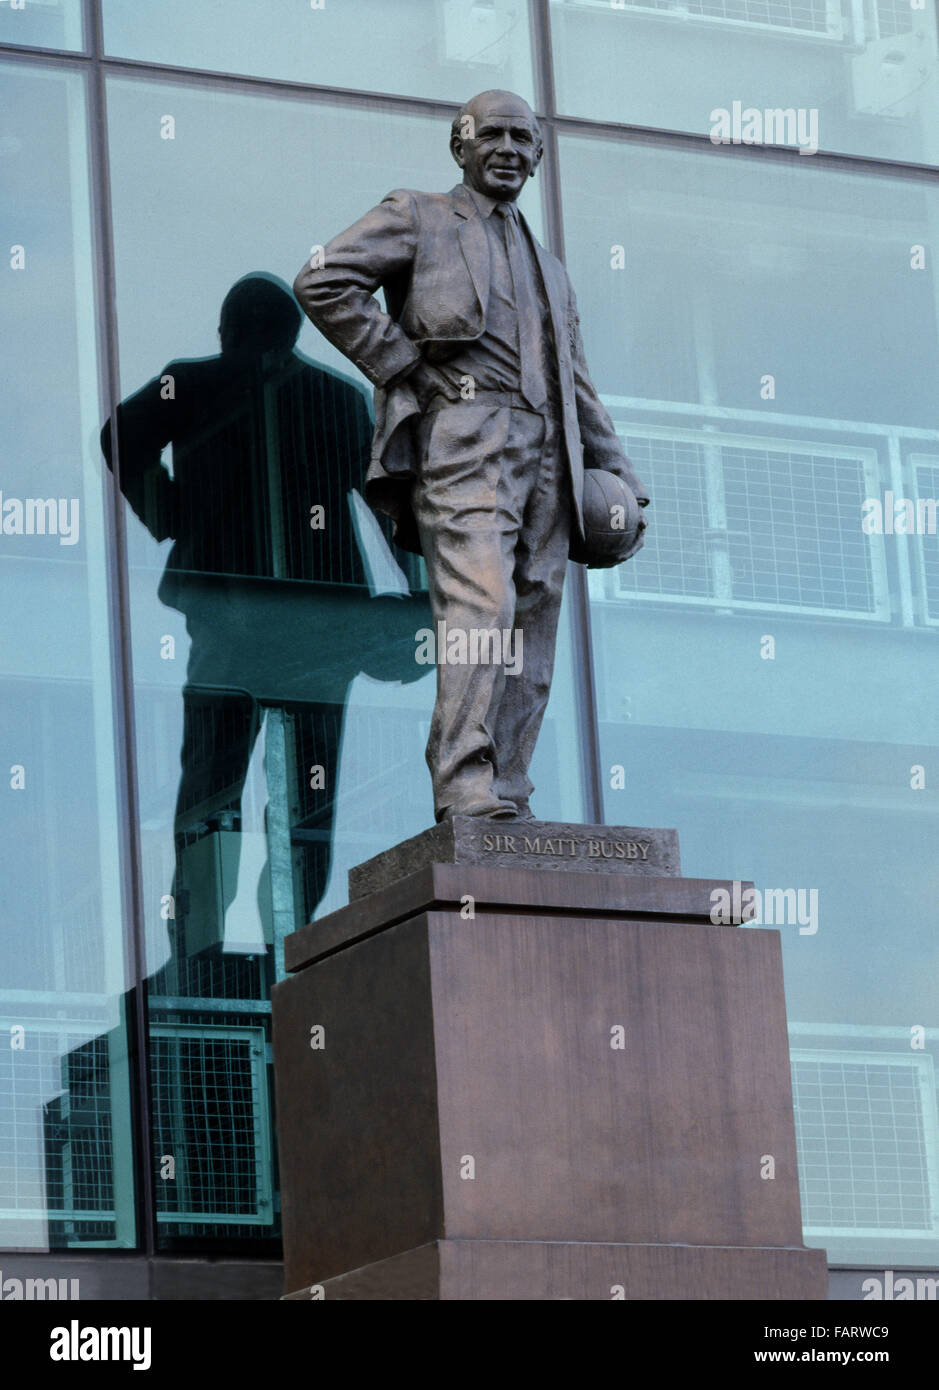 MANCHESTER UNITED FOOTBALL CLUB (Old Trafford), Sir Matt Busby Way, Manchester. View of the statue of Sir Matt Busby. - Stock Image